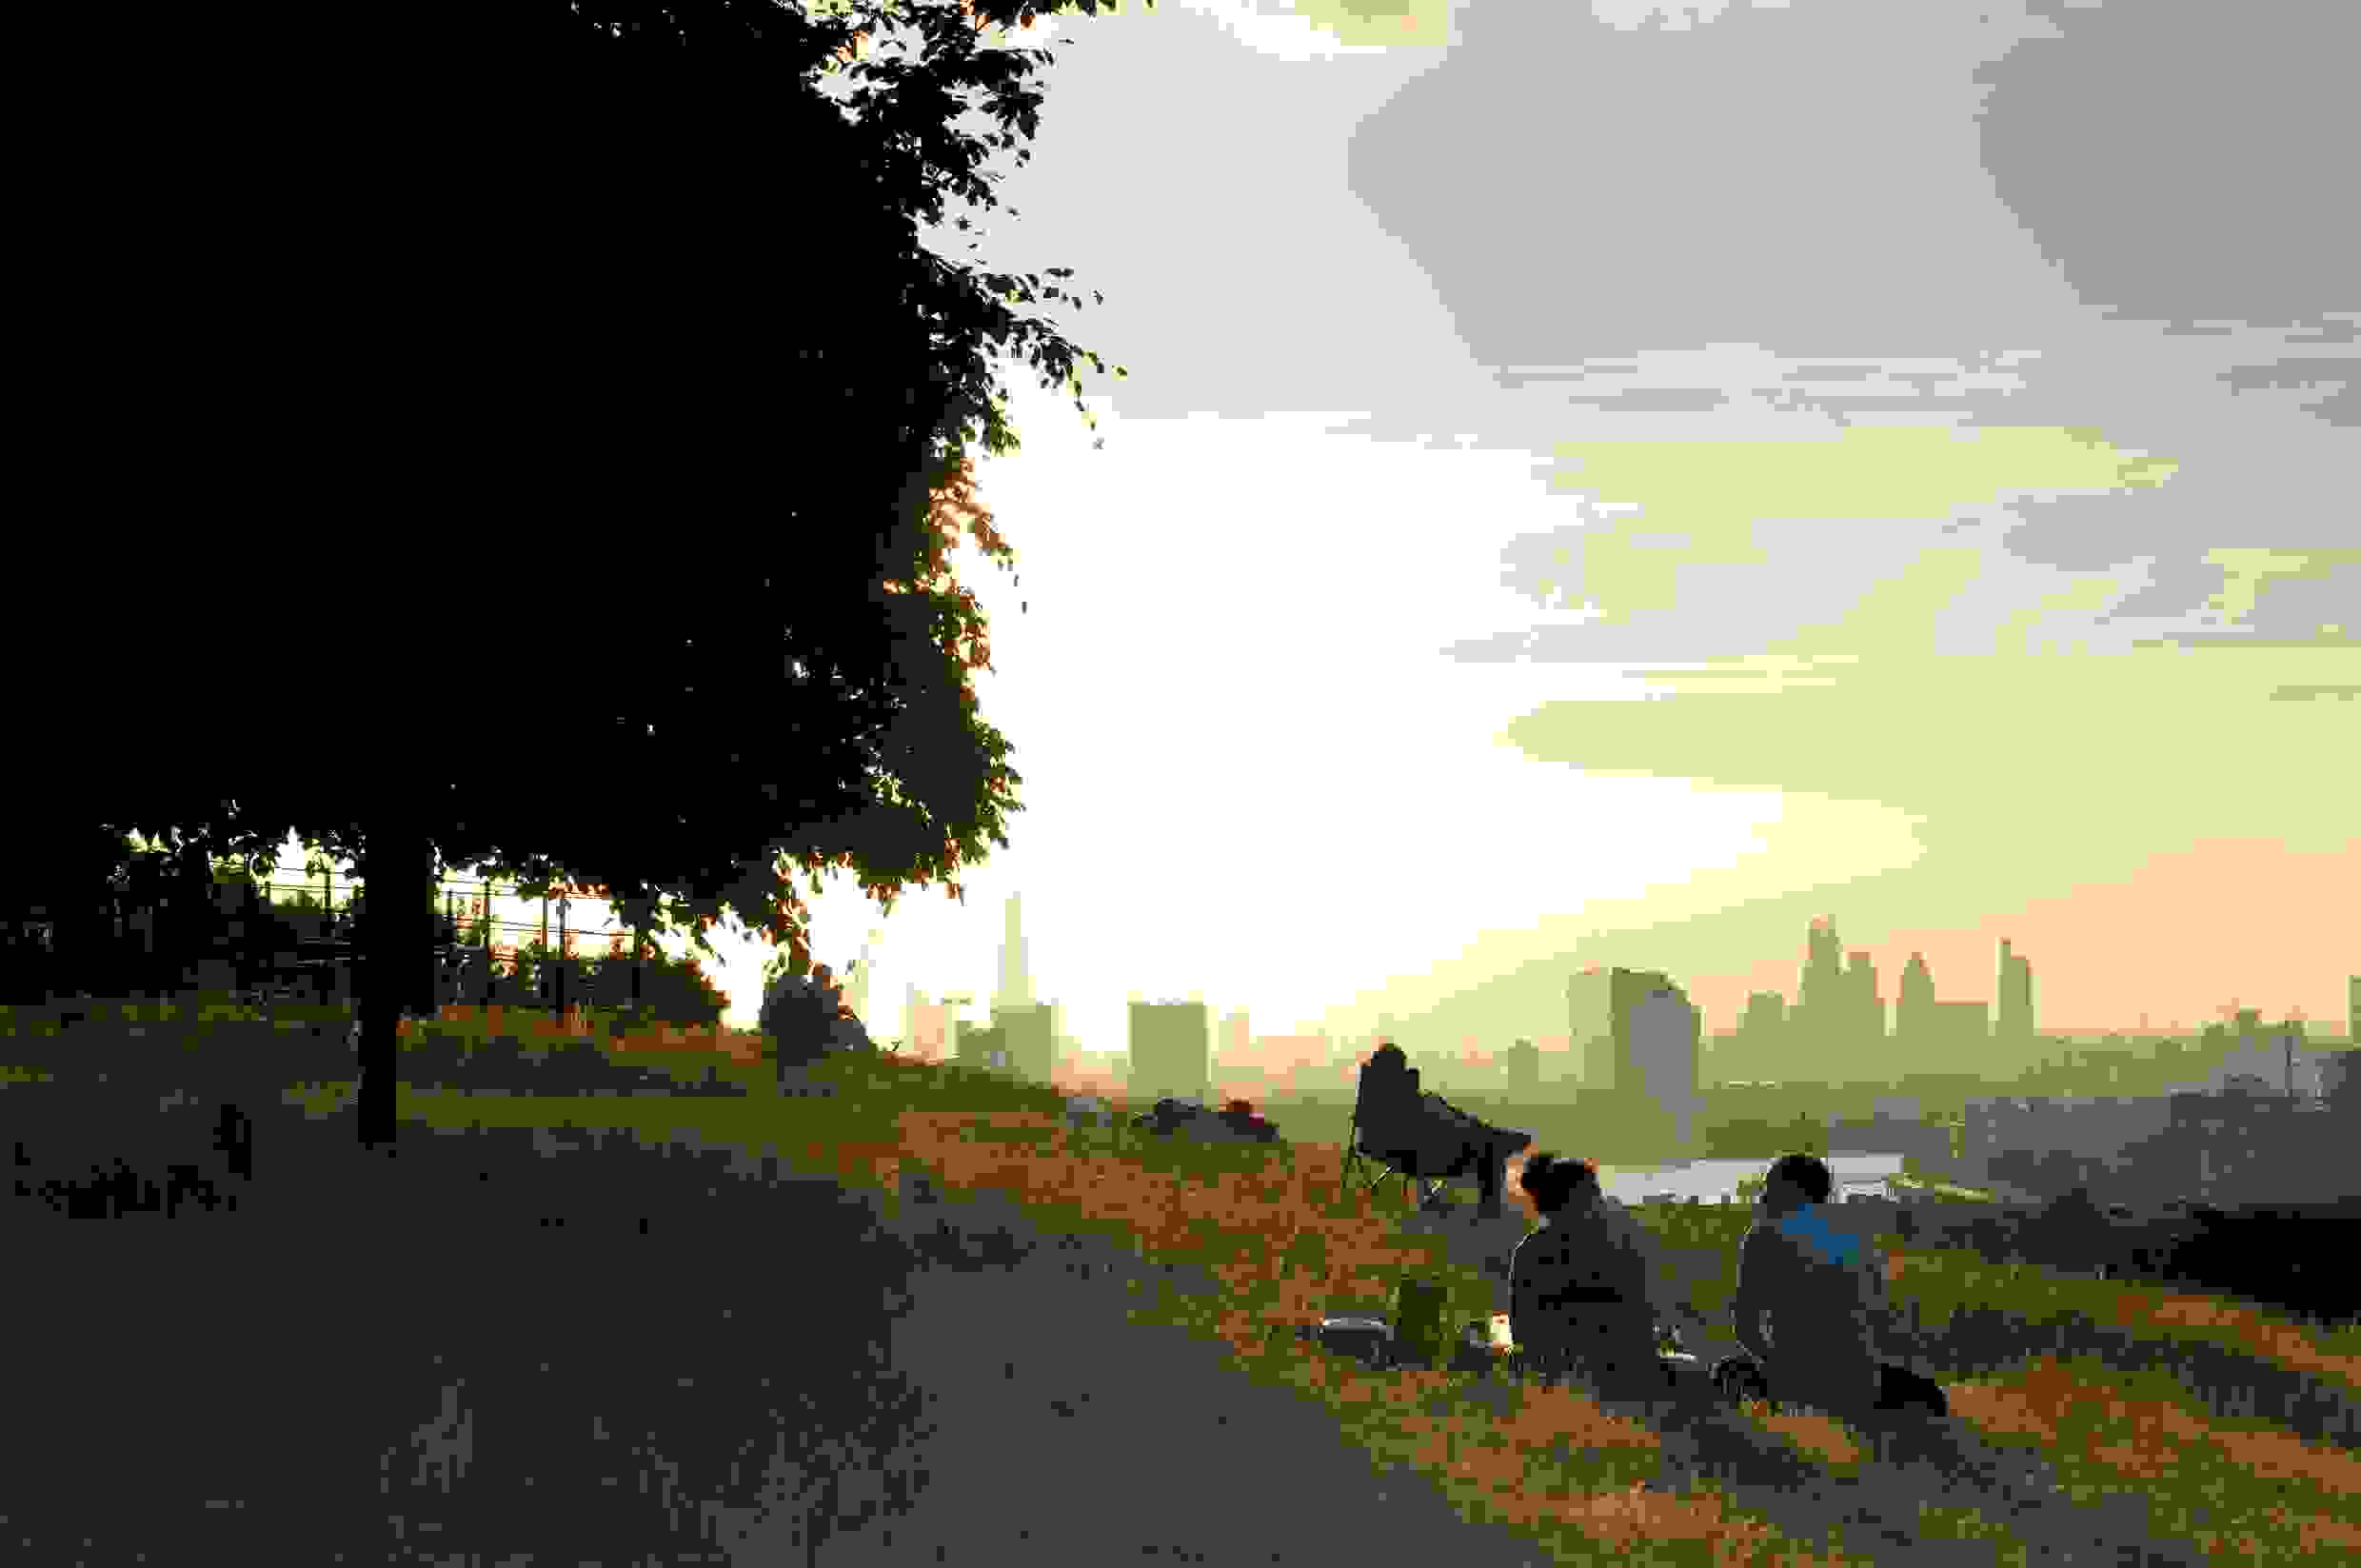 Royal Greenwich publishes Parks and Open Spaces Strategy